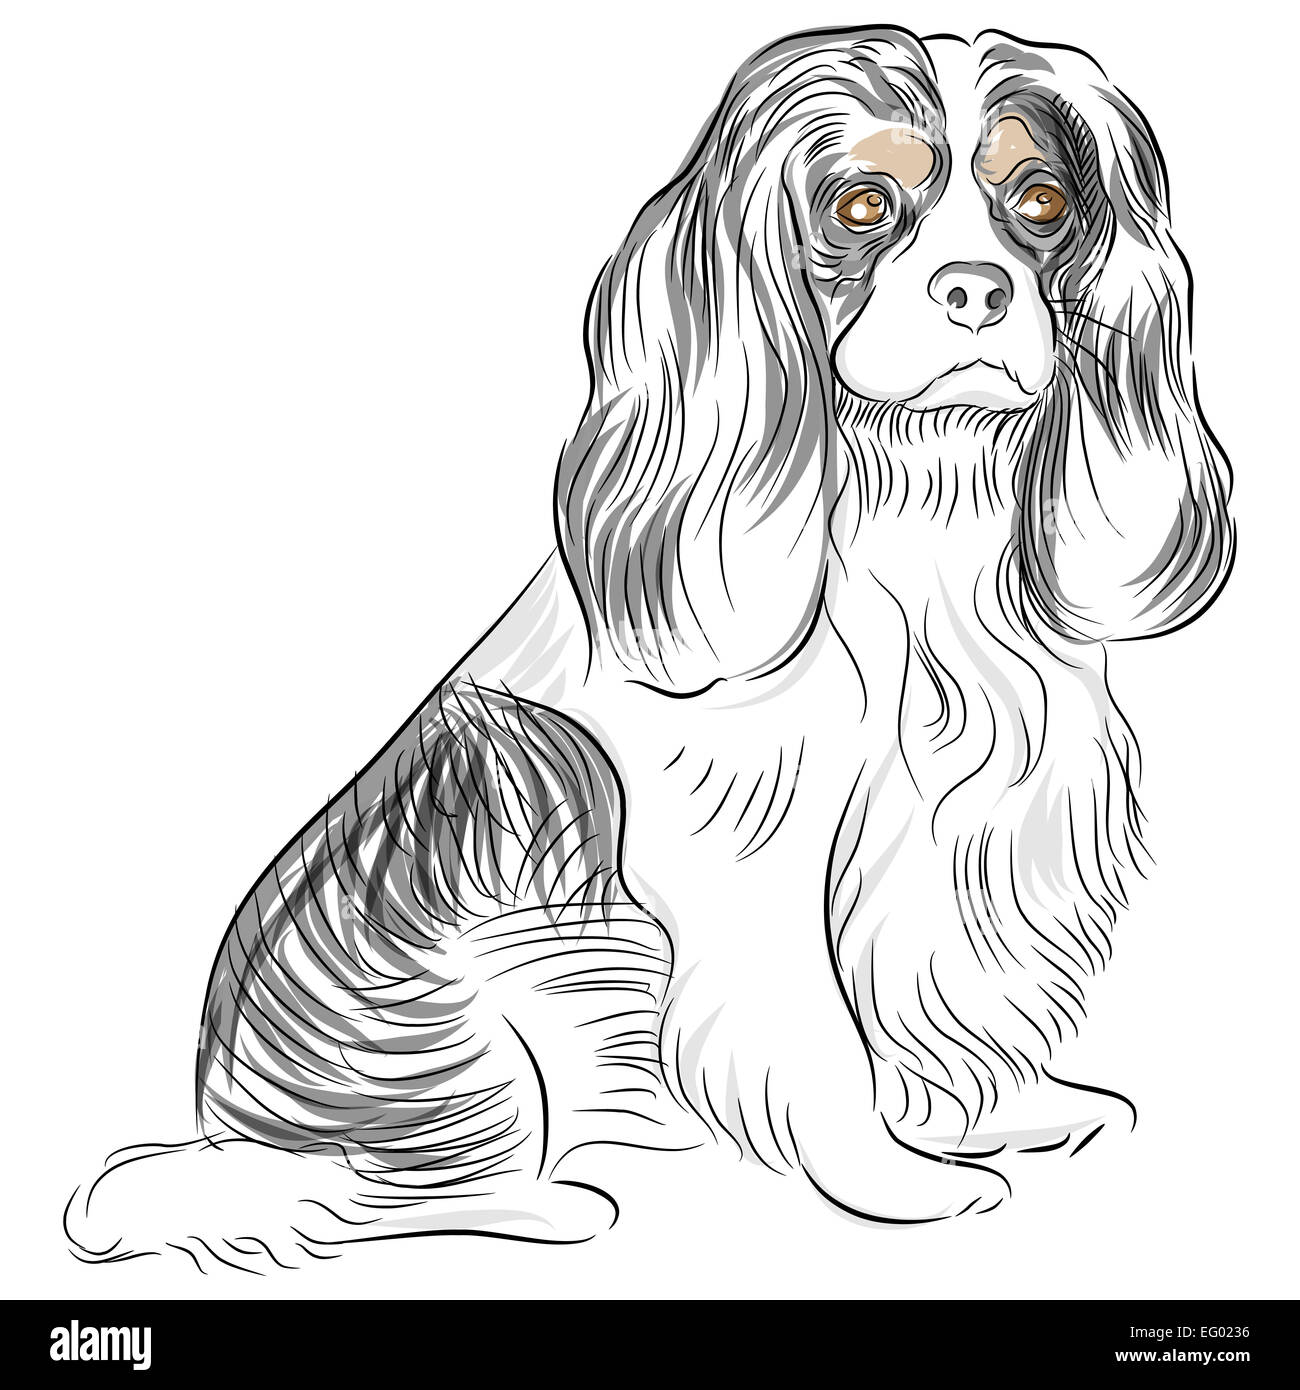 An image of a Cavalier King Charles Spaniel dog Drawing